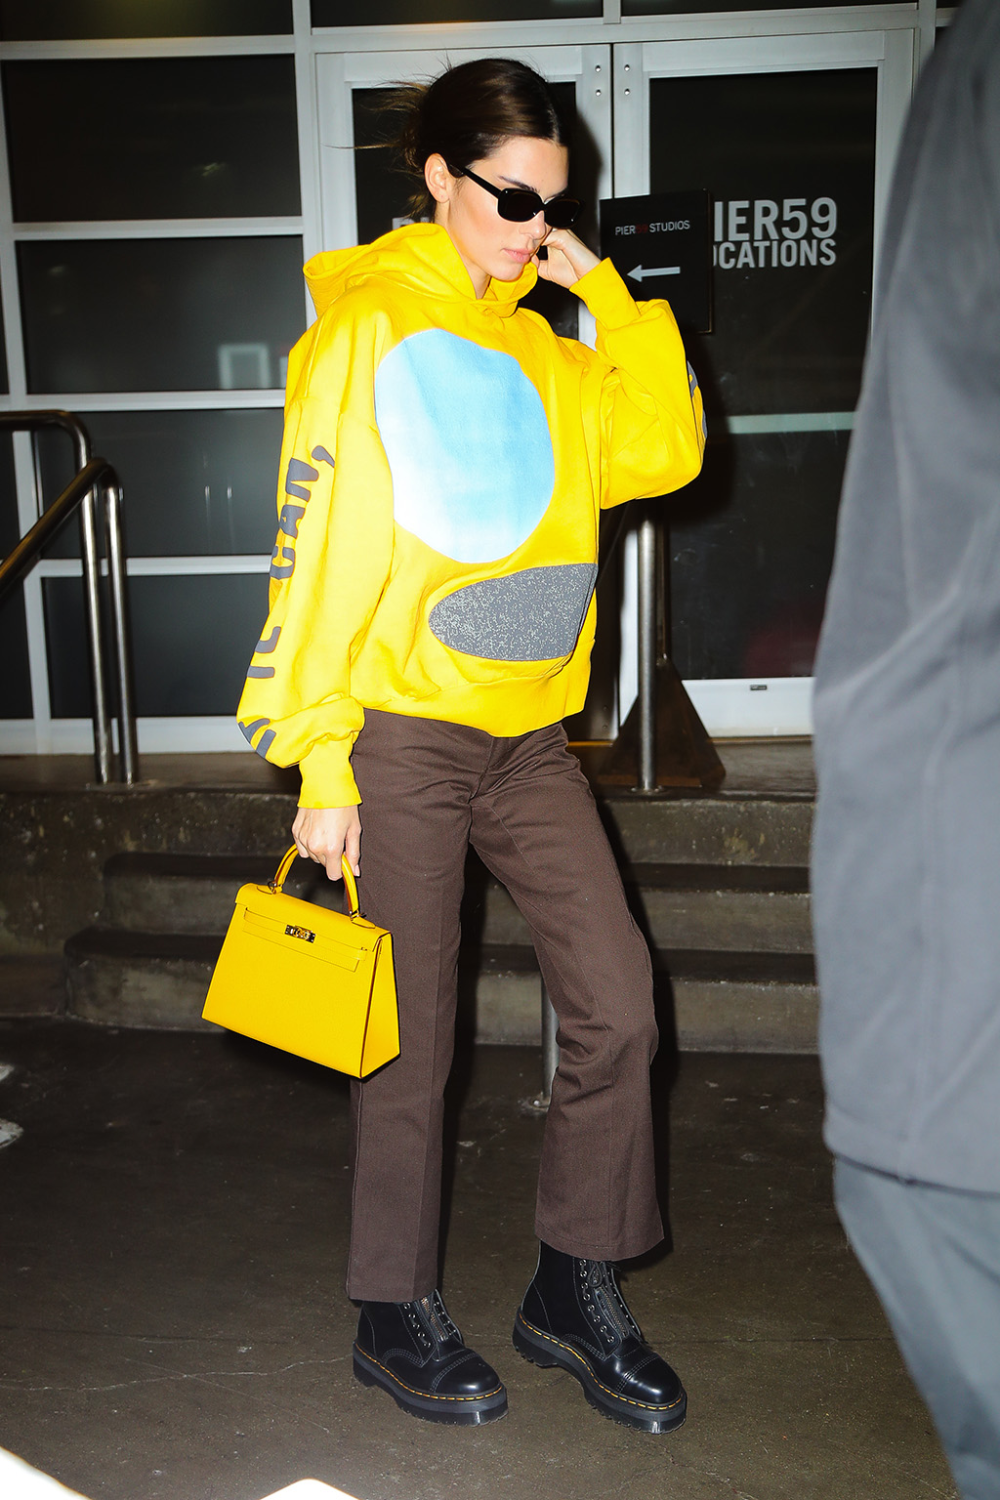 Kendall Jenner Wears Sunny Yellow Hoodie With The Fn Shoe Of The Year In Nyc Kendall Jenner Street Style Kendall Jenner Outfits Fashion [ 1500 x 1000 Pixel ]